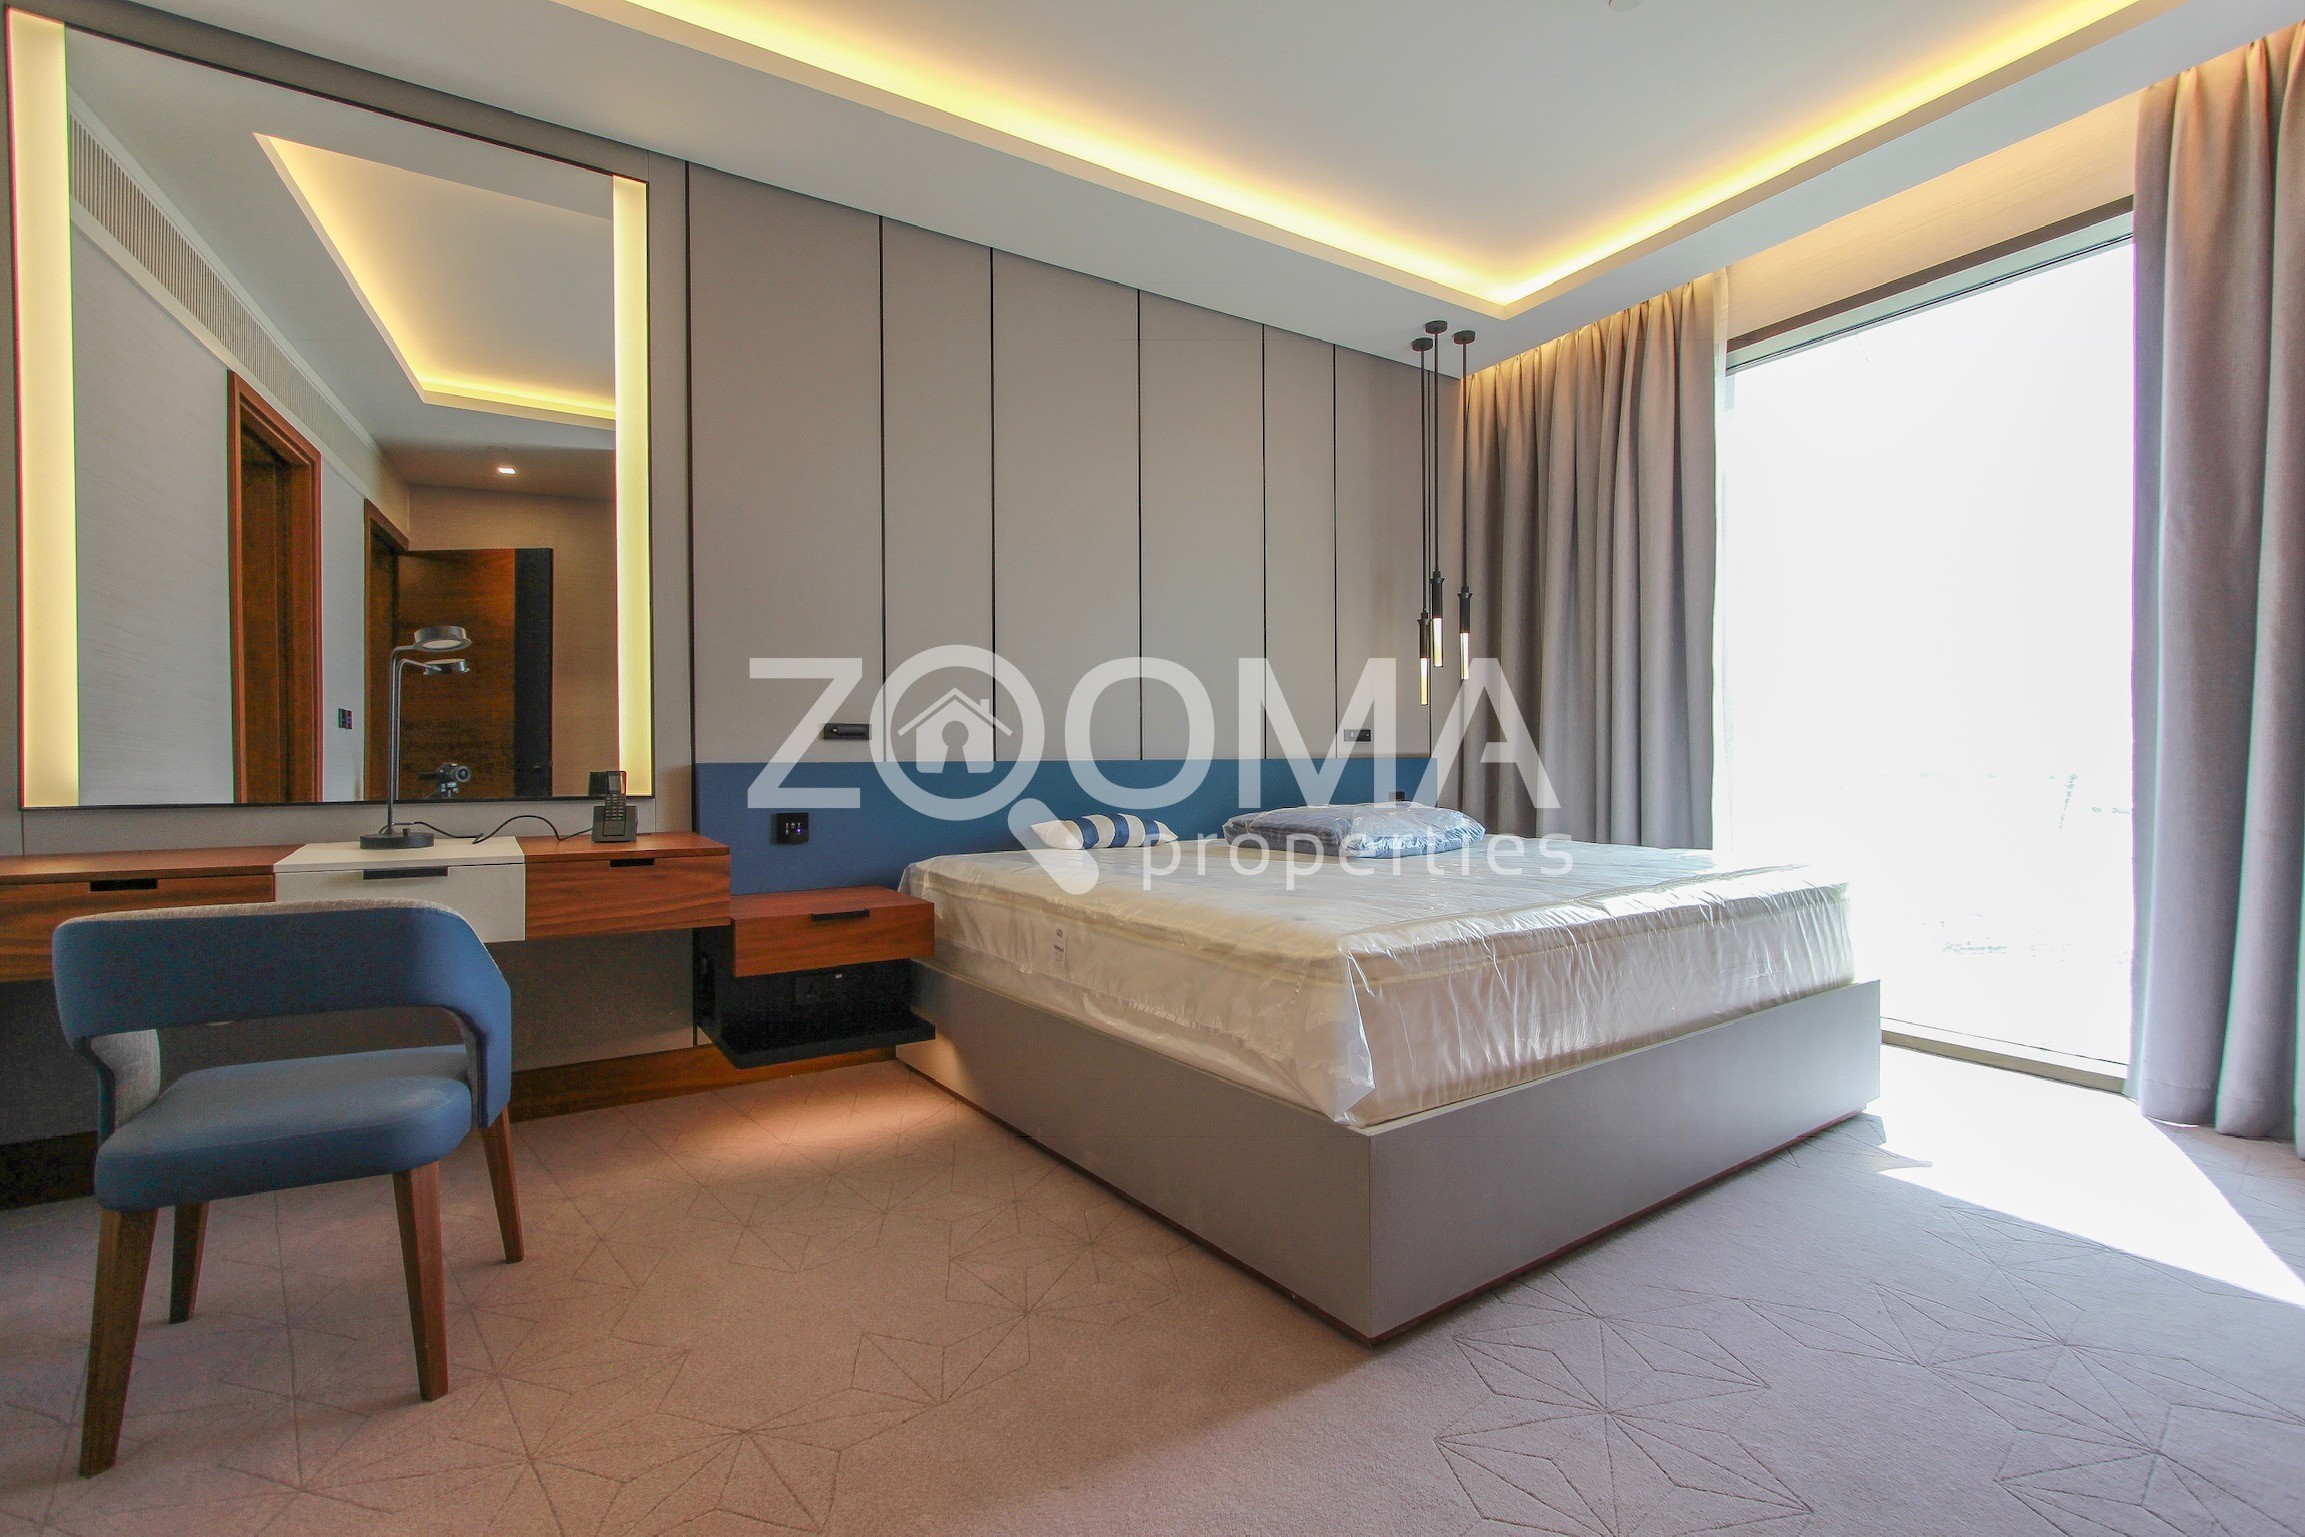 Sea and Pool View | All Bills Included | Must See - Image 4